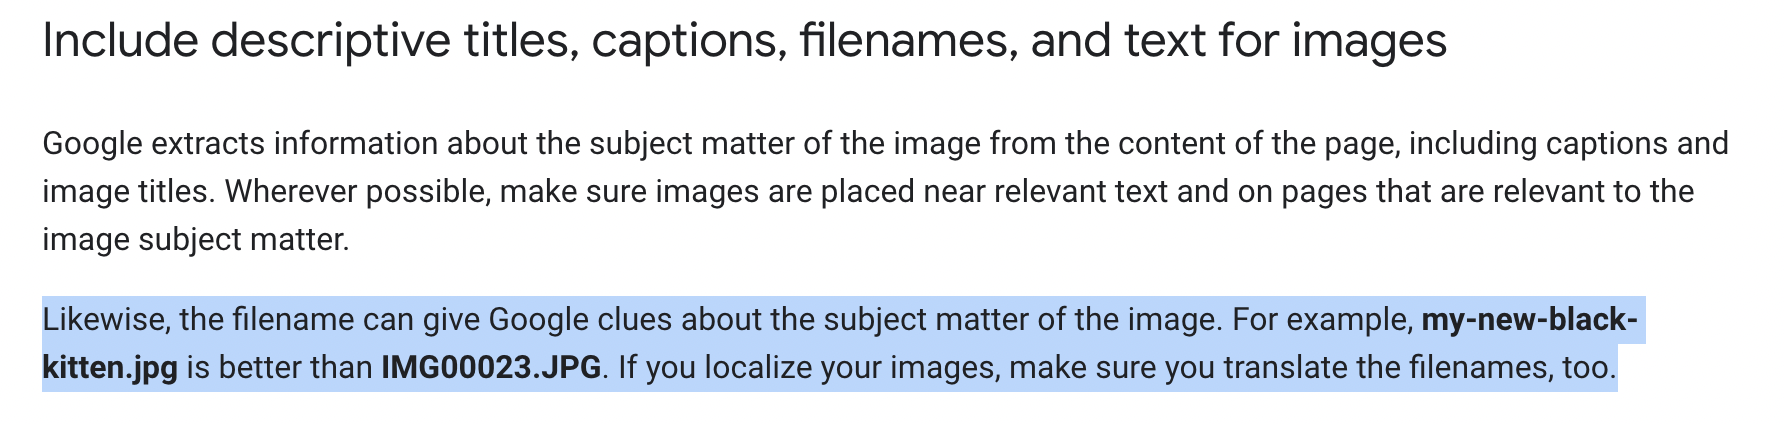 Google Title, Caption, File Name and Alt Text Guidelines for Images